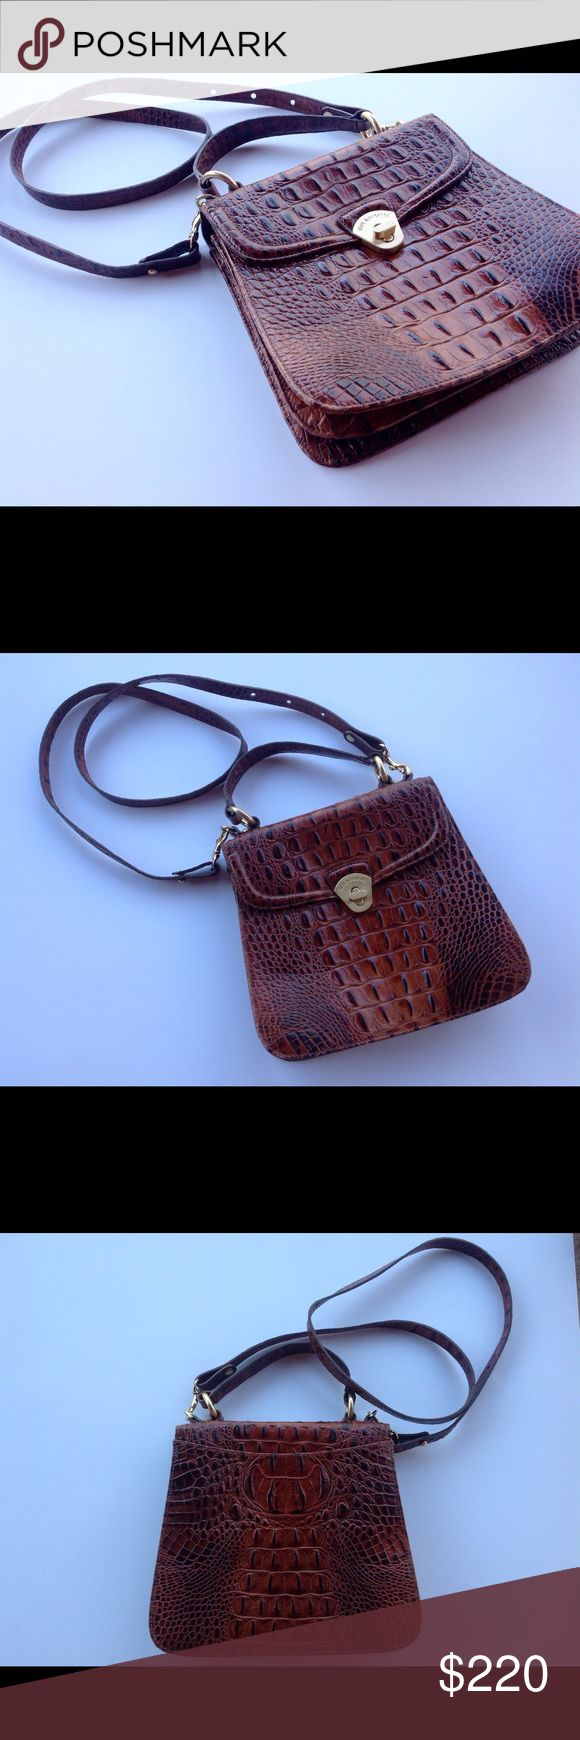 Brahmin Brown Crocodile Handbag / Crossbody Gorgeous brown bag with removable long strap. Three compartment inside with several pockets. Very clean . In excellent condition ! Measures 9 x 8.5x4 Brahmin Bags